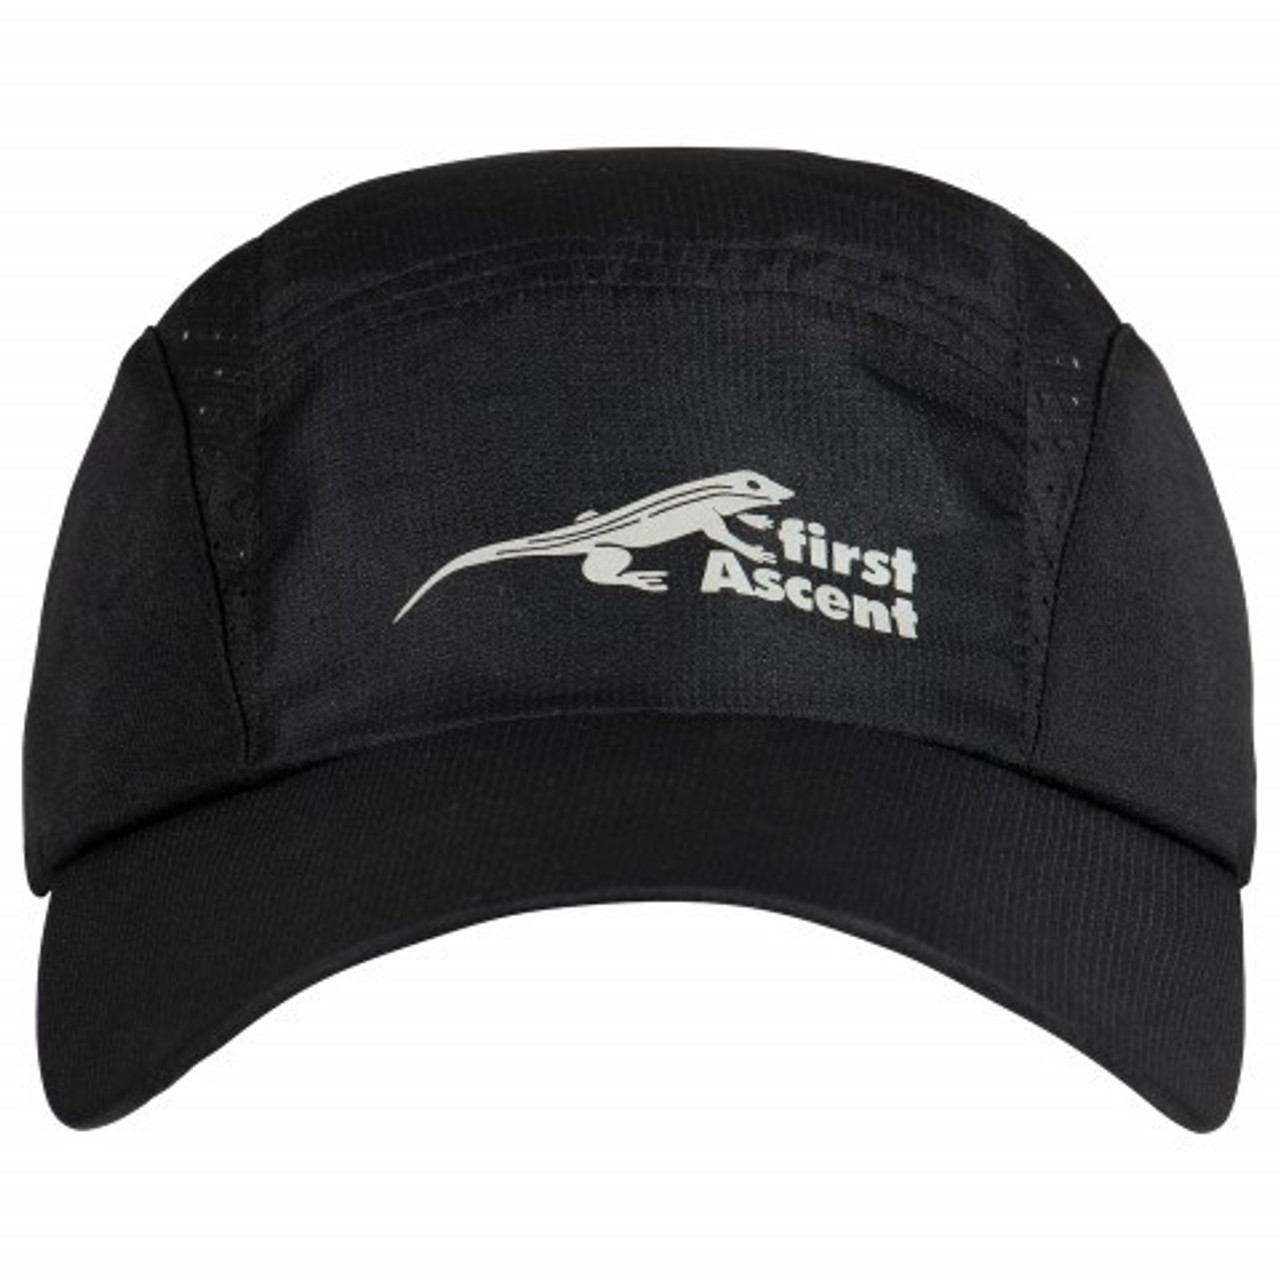 First Ascent Biotic Cap @http//www.mountainmailorder.co.za